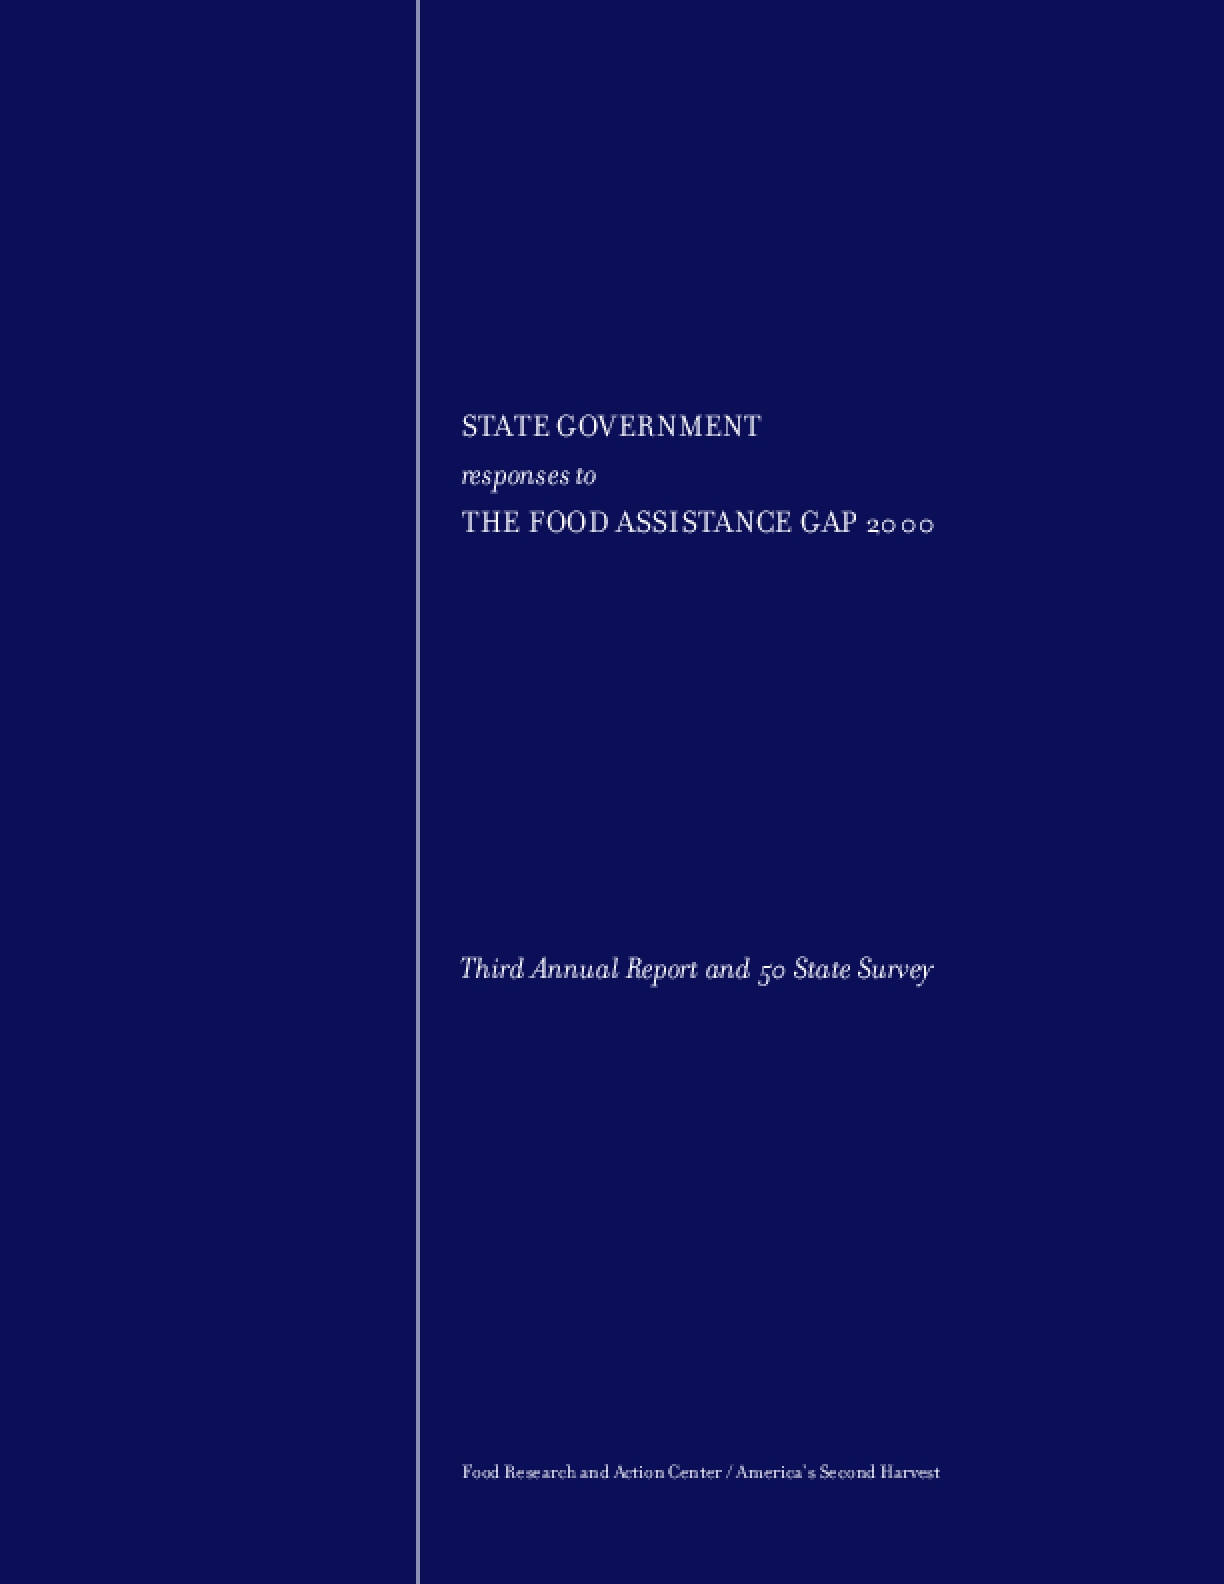 State Government Responses to the Food Assistance Gap 2000